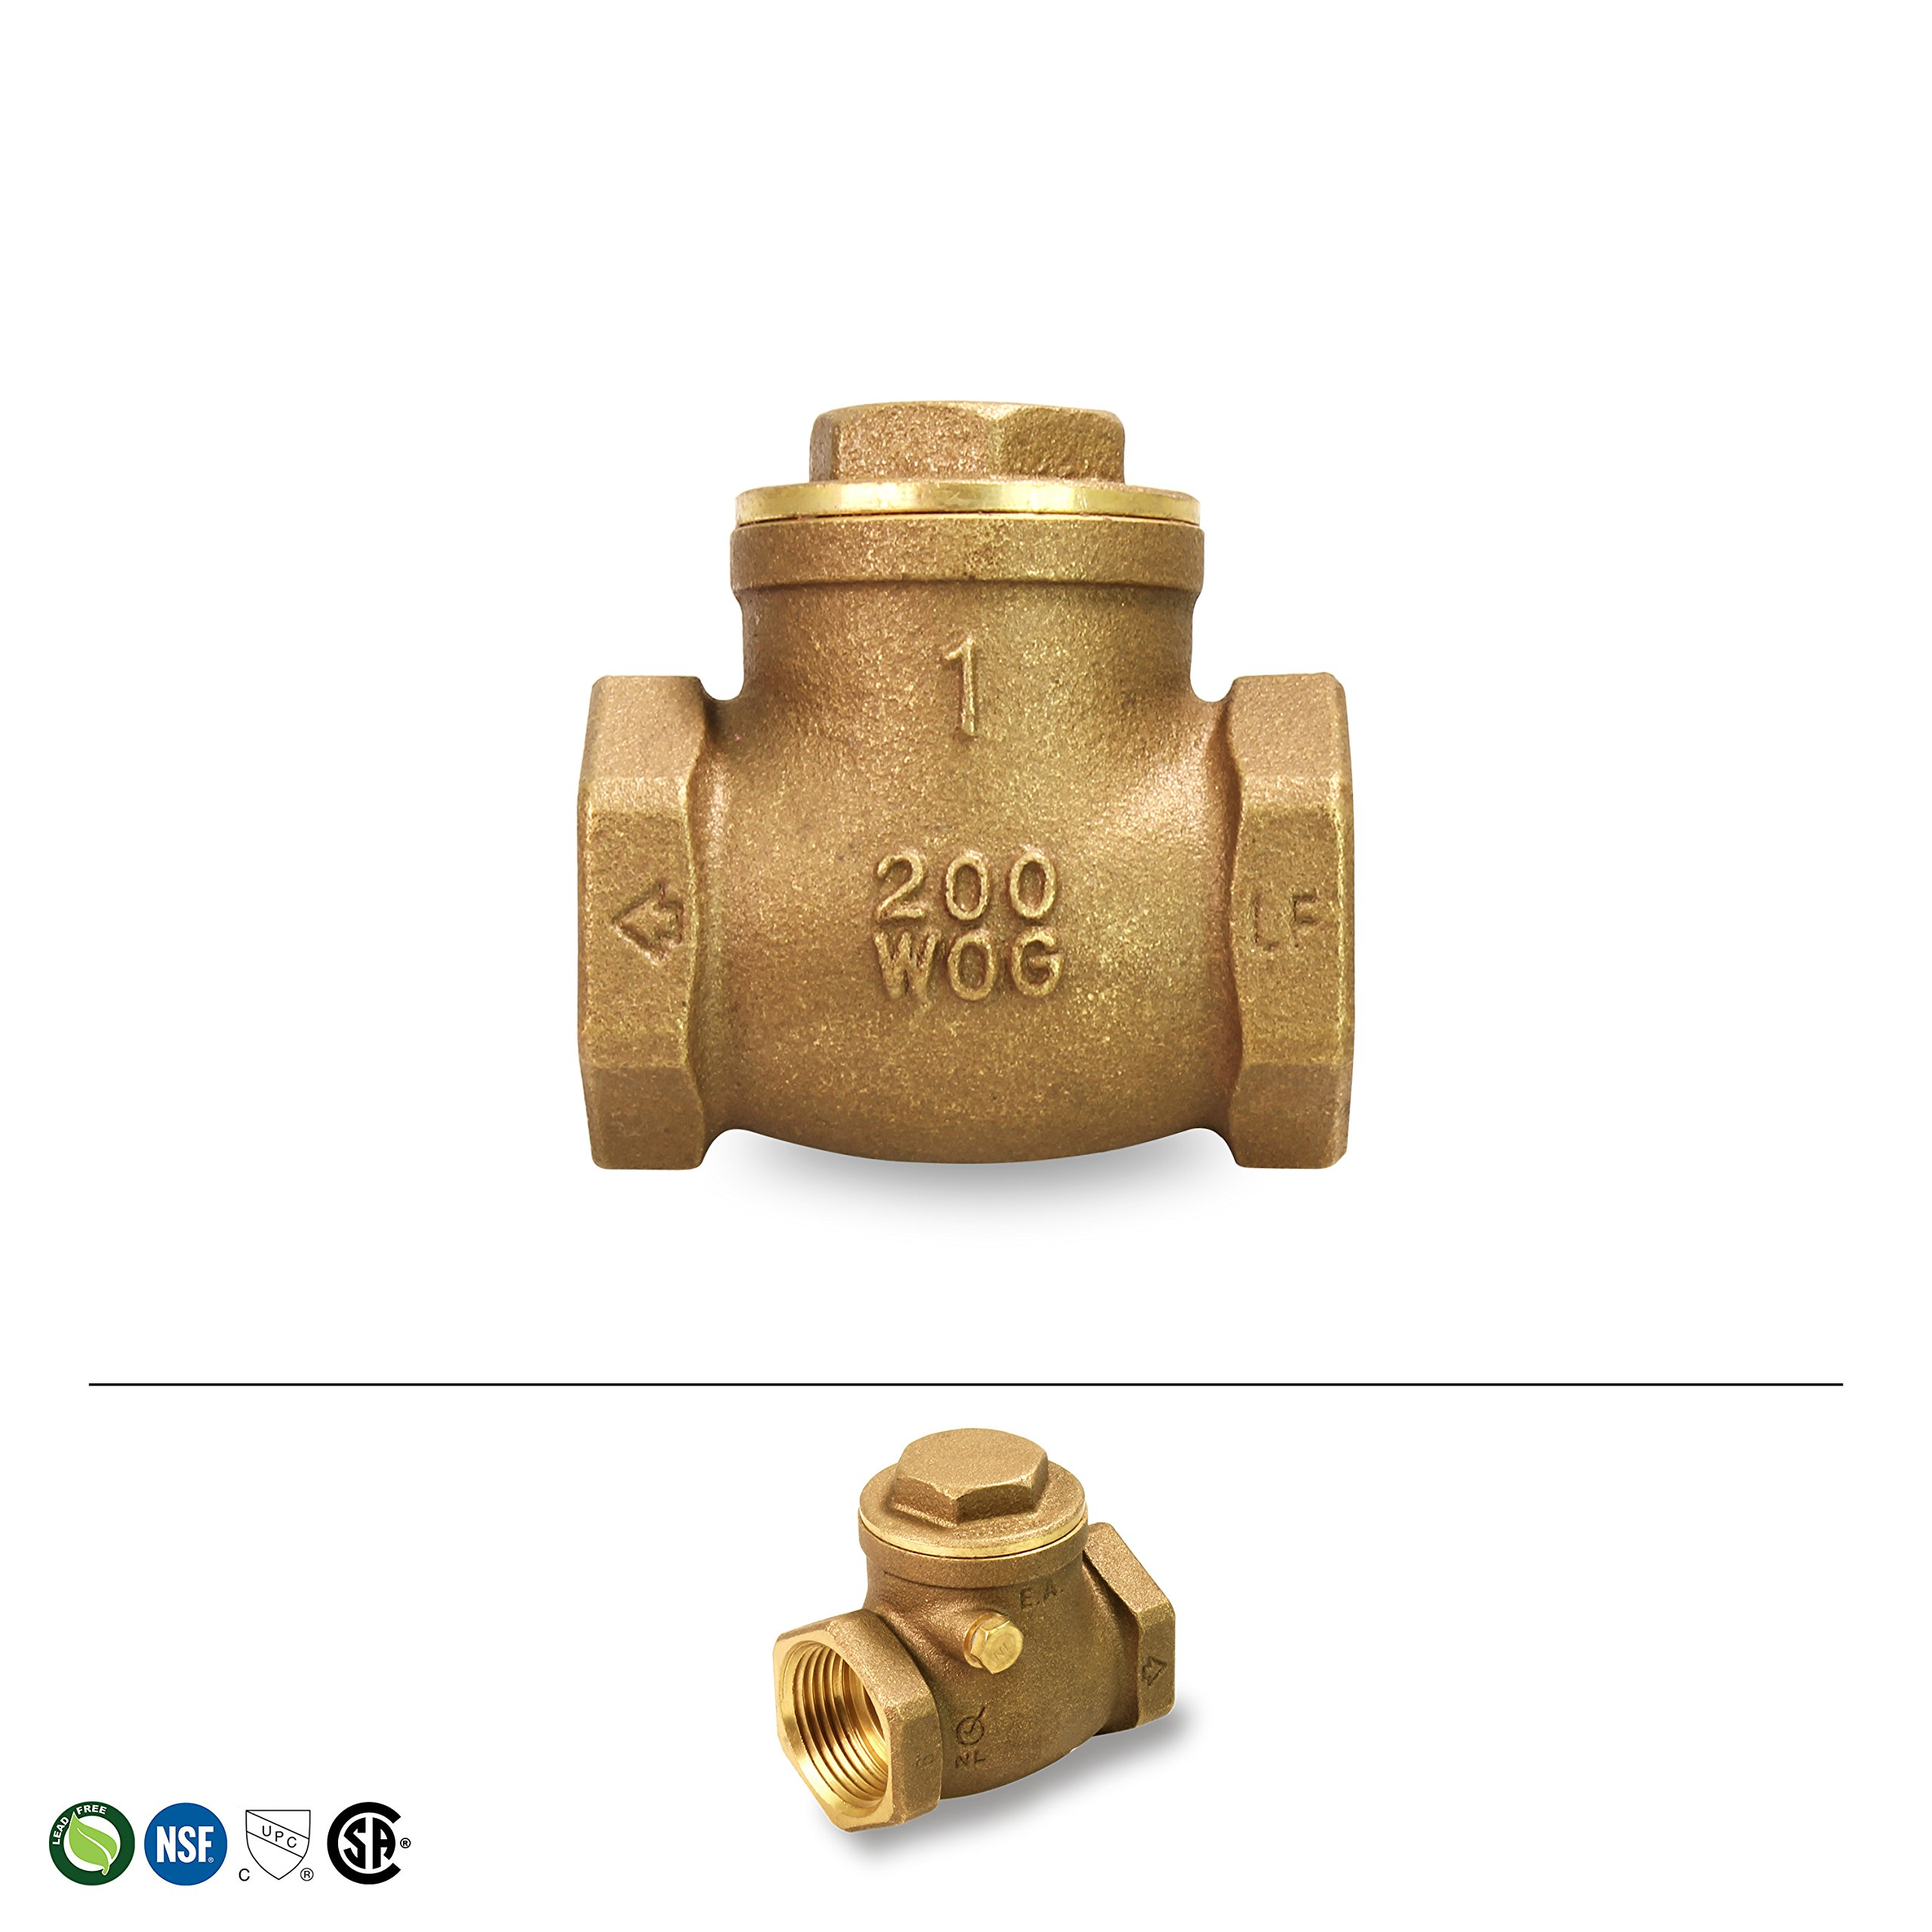 Everflow 210T001-NL 1-Inch Lead Free Brass Swing Check Valve with Female NPT Threaded, 200 PSI WOG & 125 PSI SWP, Brass Construction, Higher Corrosion Resistance Economical, Durable & Easy to Install by Everflow Supplies (Image #3)